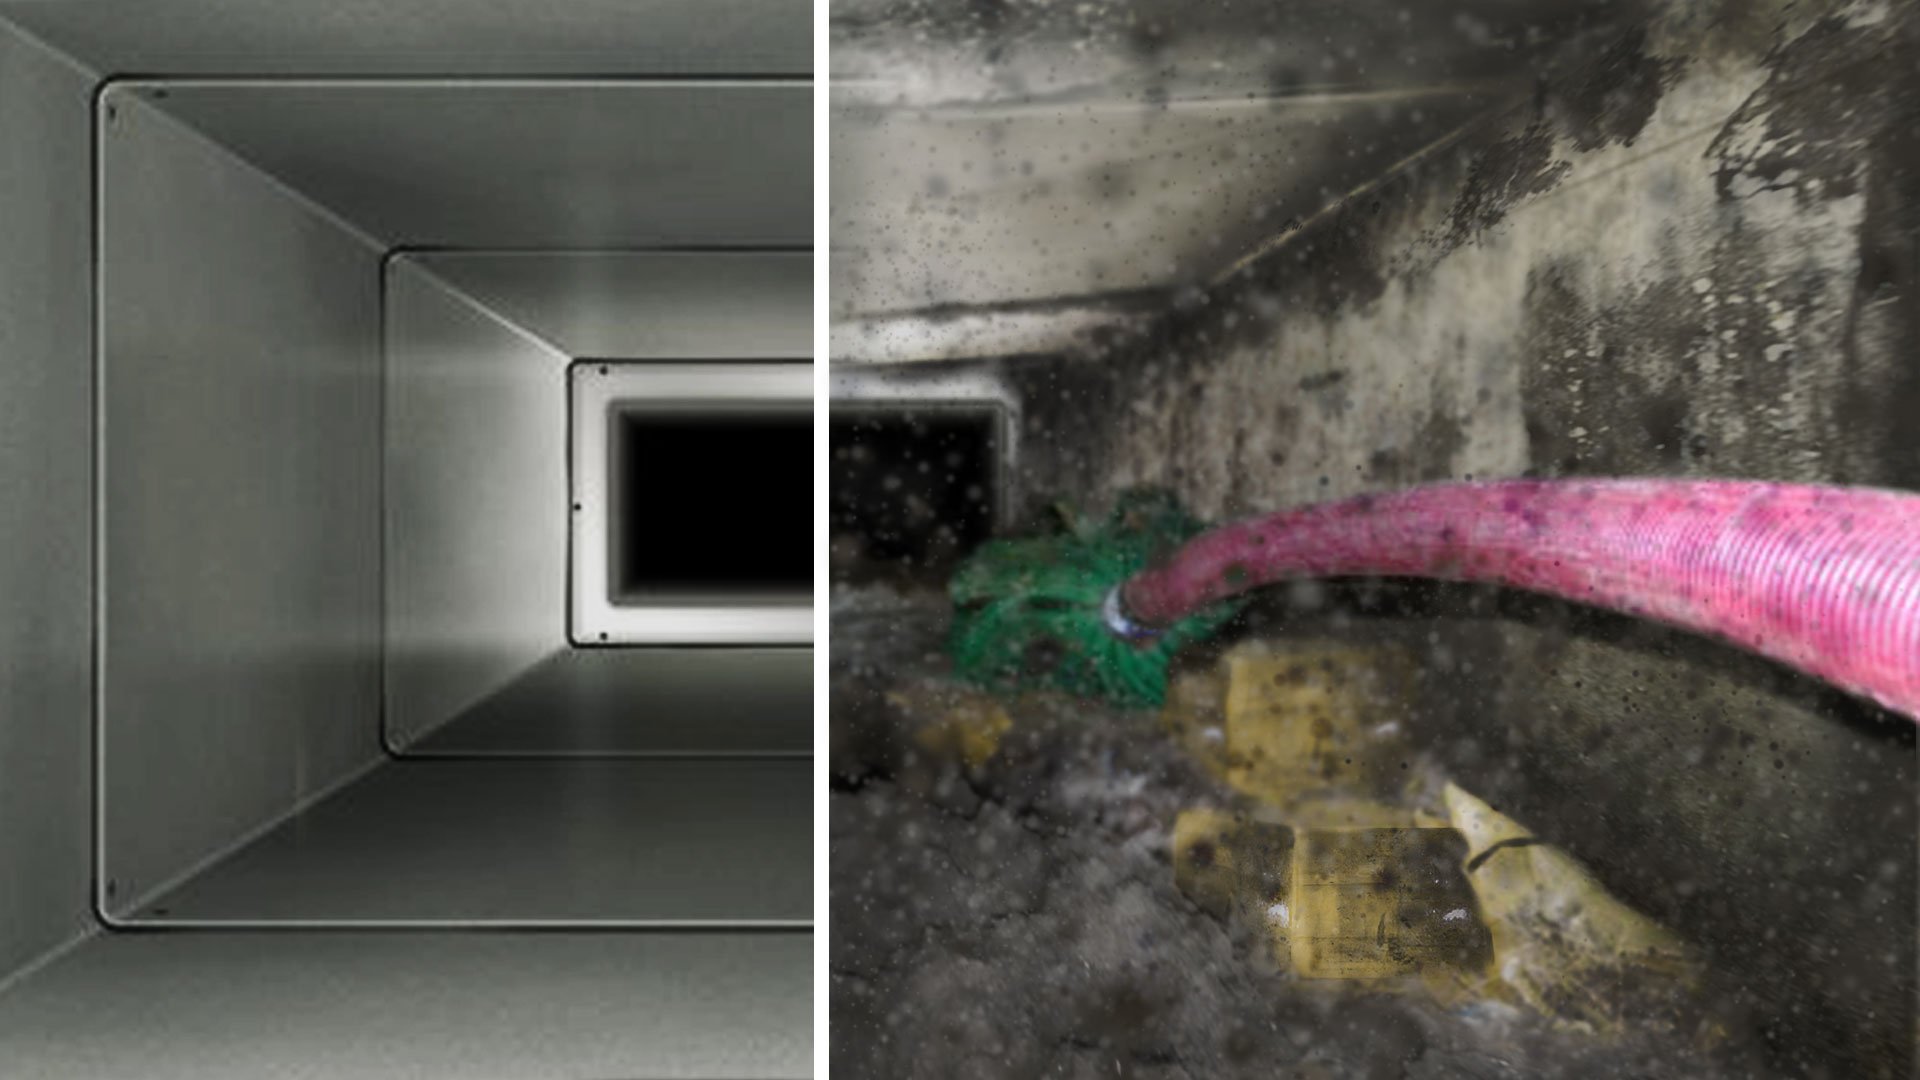 13) A dirty air duct (Duct Cleaning with Nexgen)